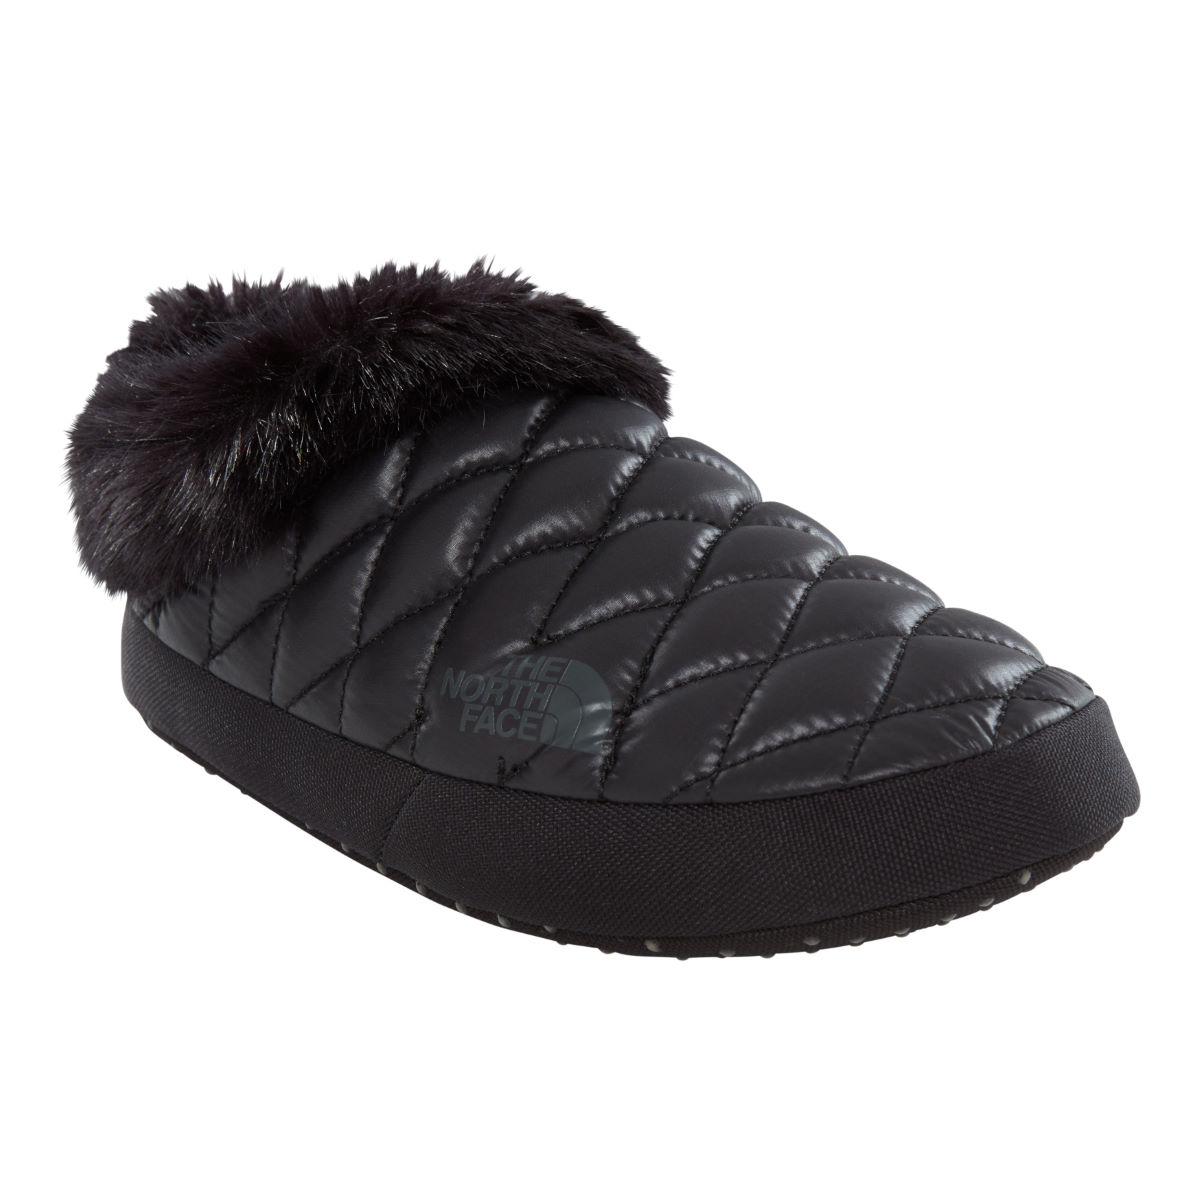 Pantuflas The North Face ThermoBall Tent Mule Faux Fur IV para mujer - Pantuflas